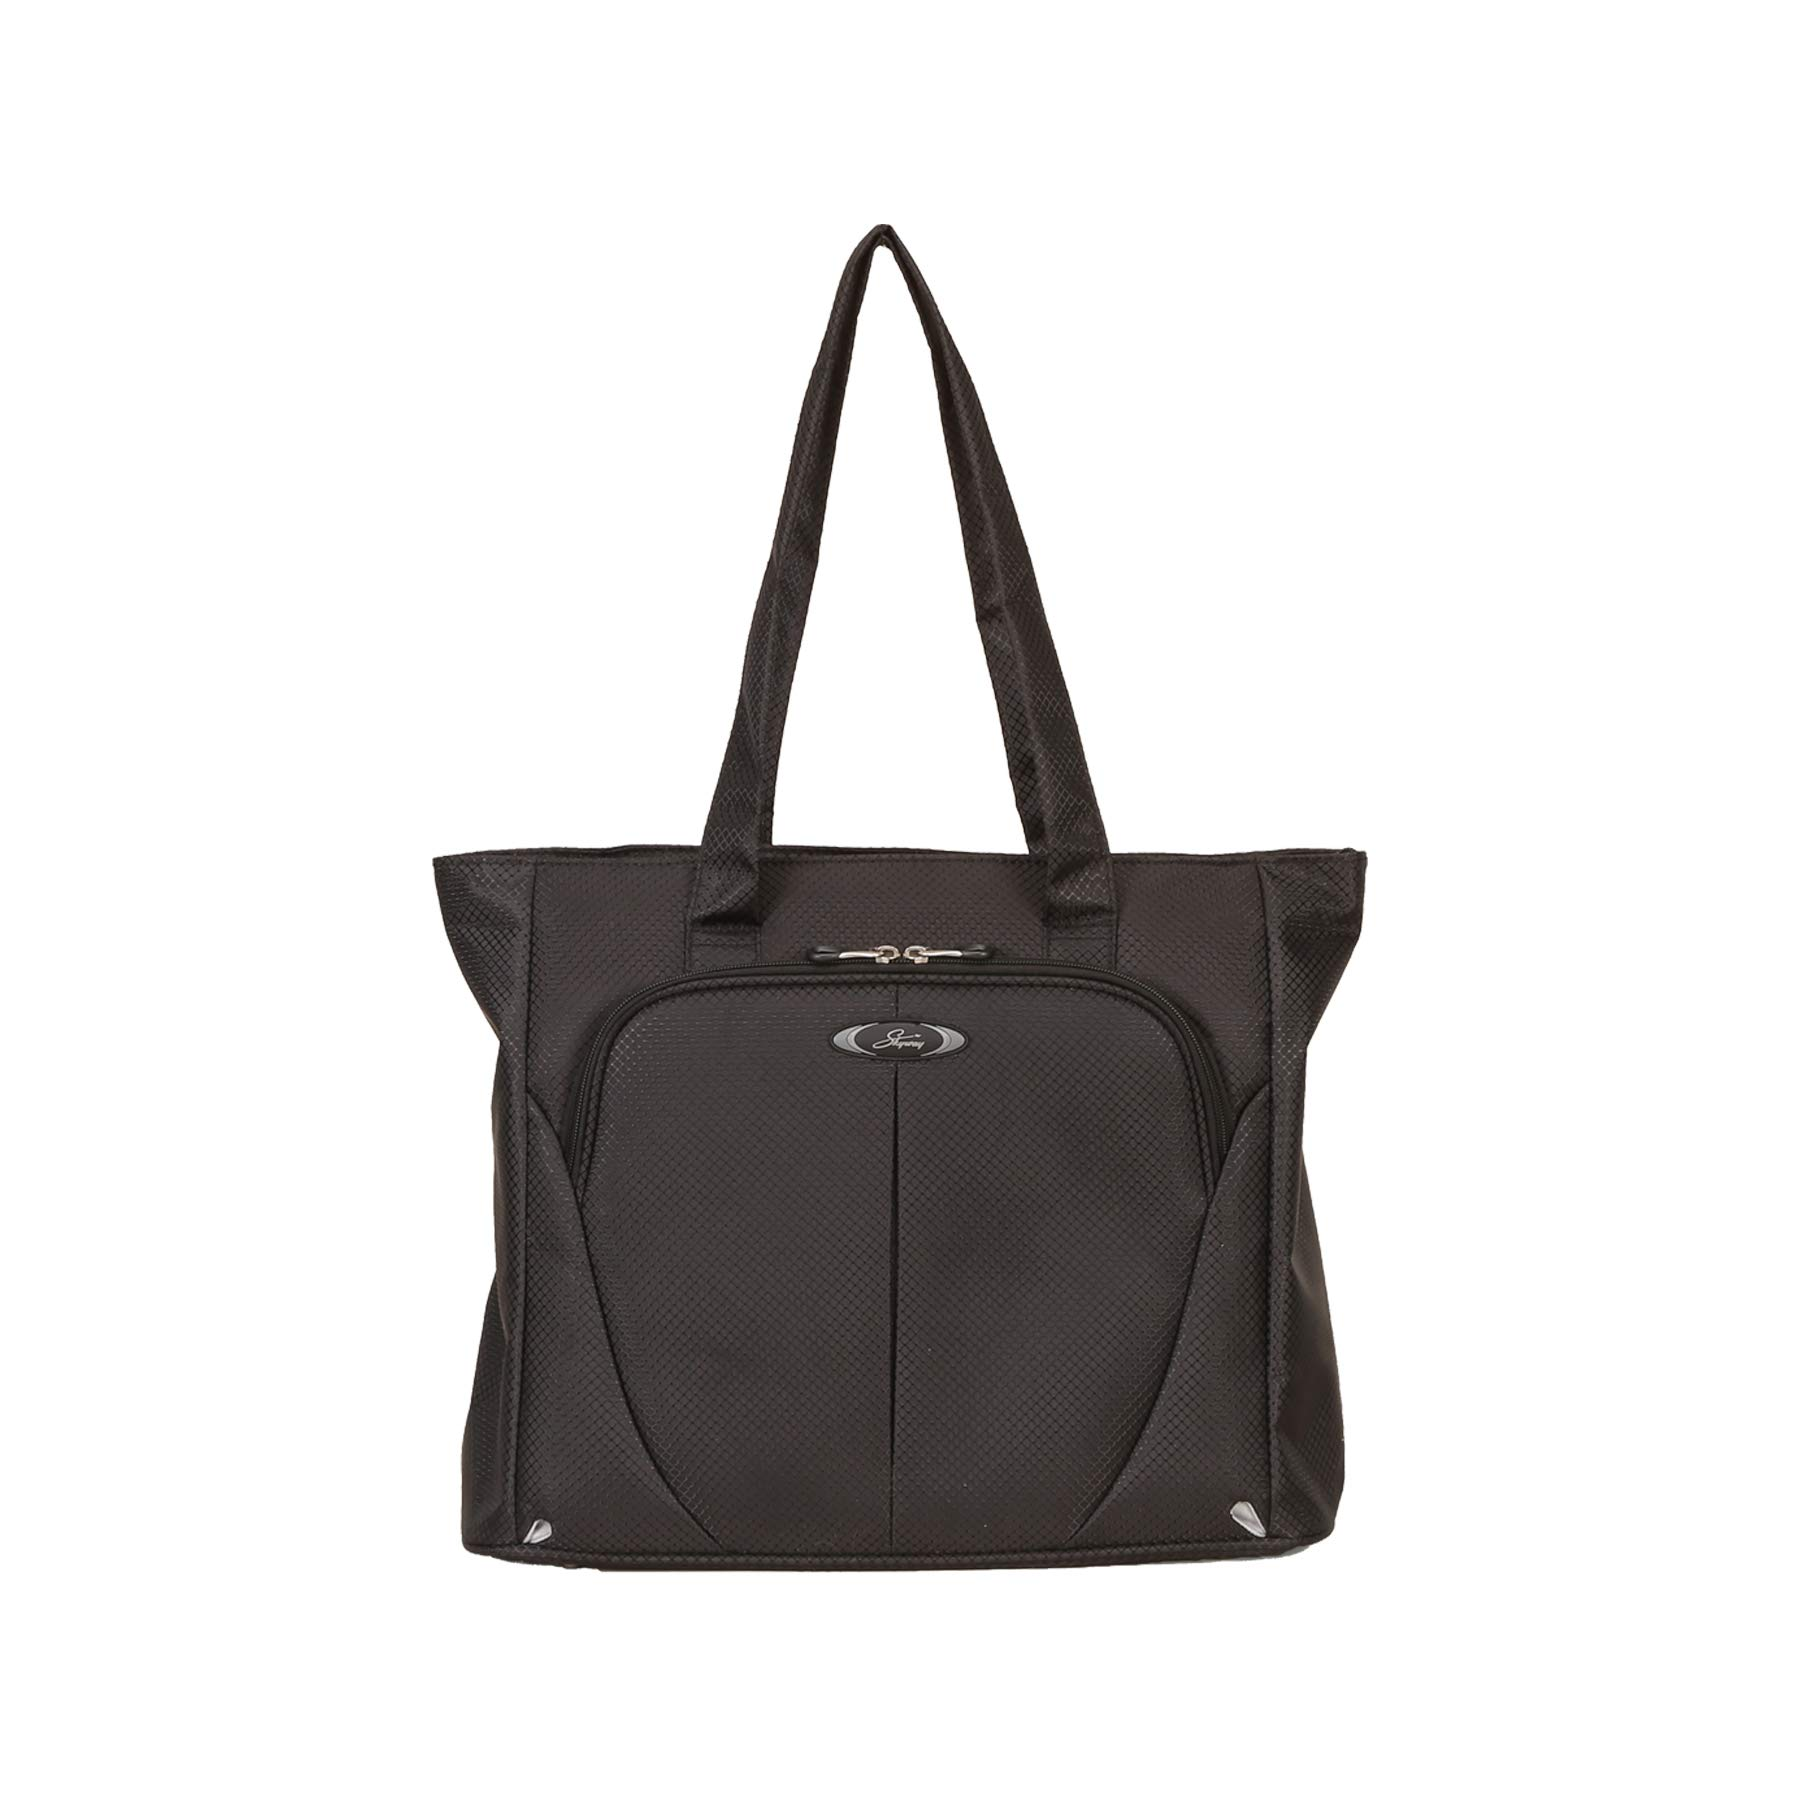 Skyway Luggage Mirage Superlight 18 Inch Shopper Tote, Black, One Size